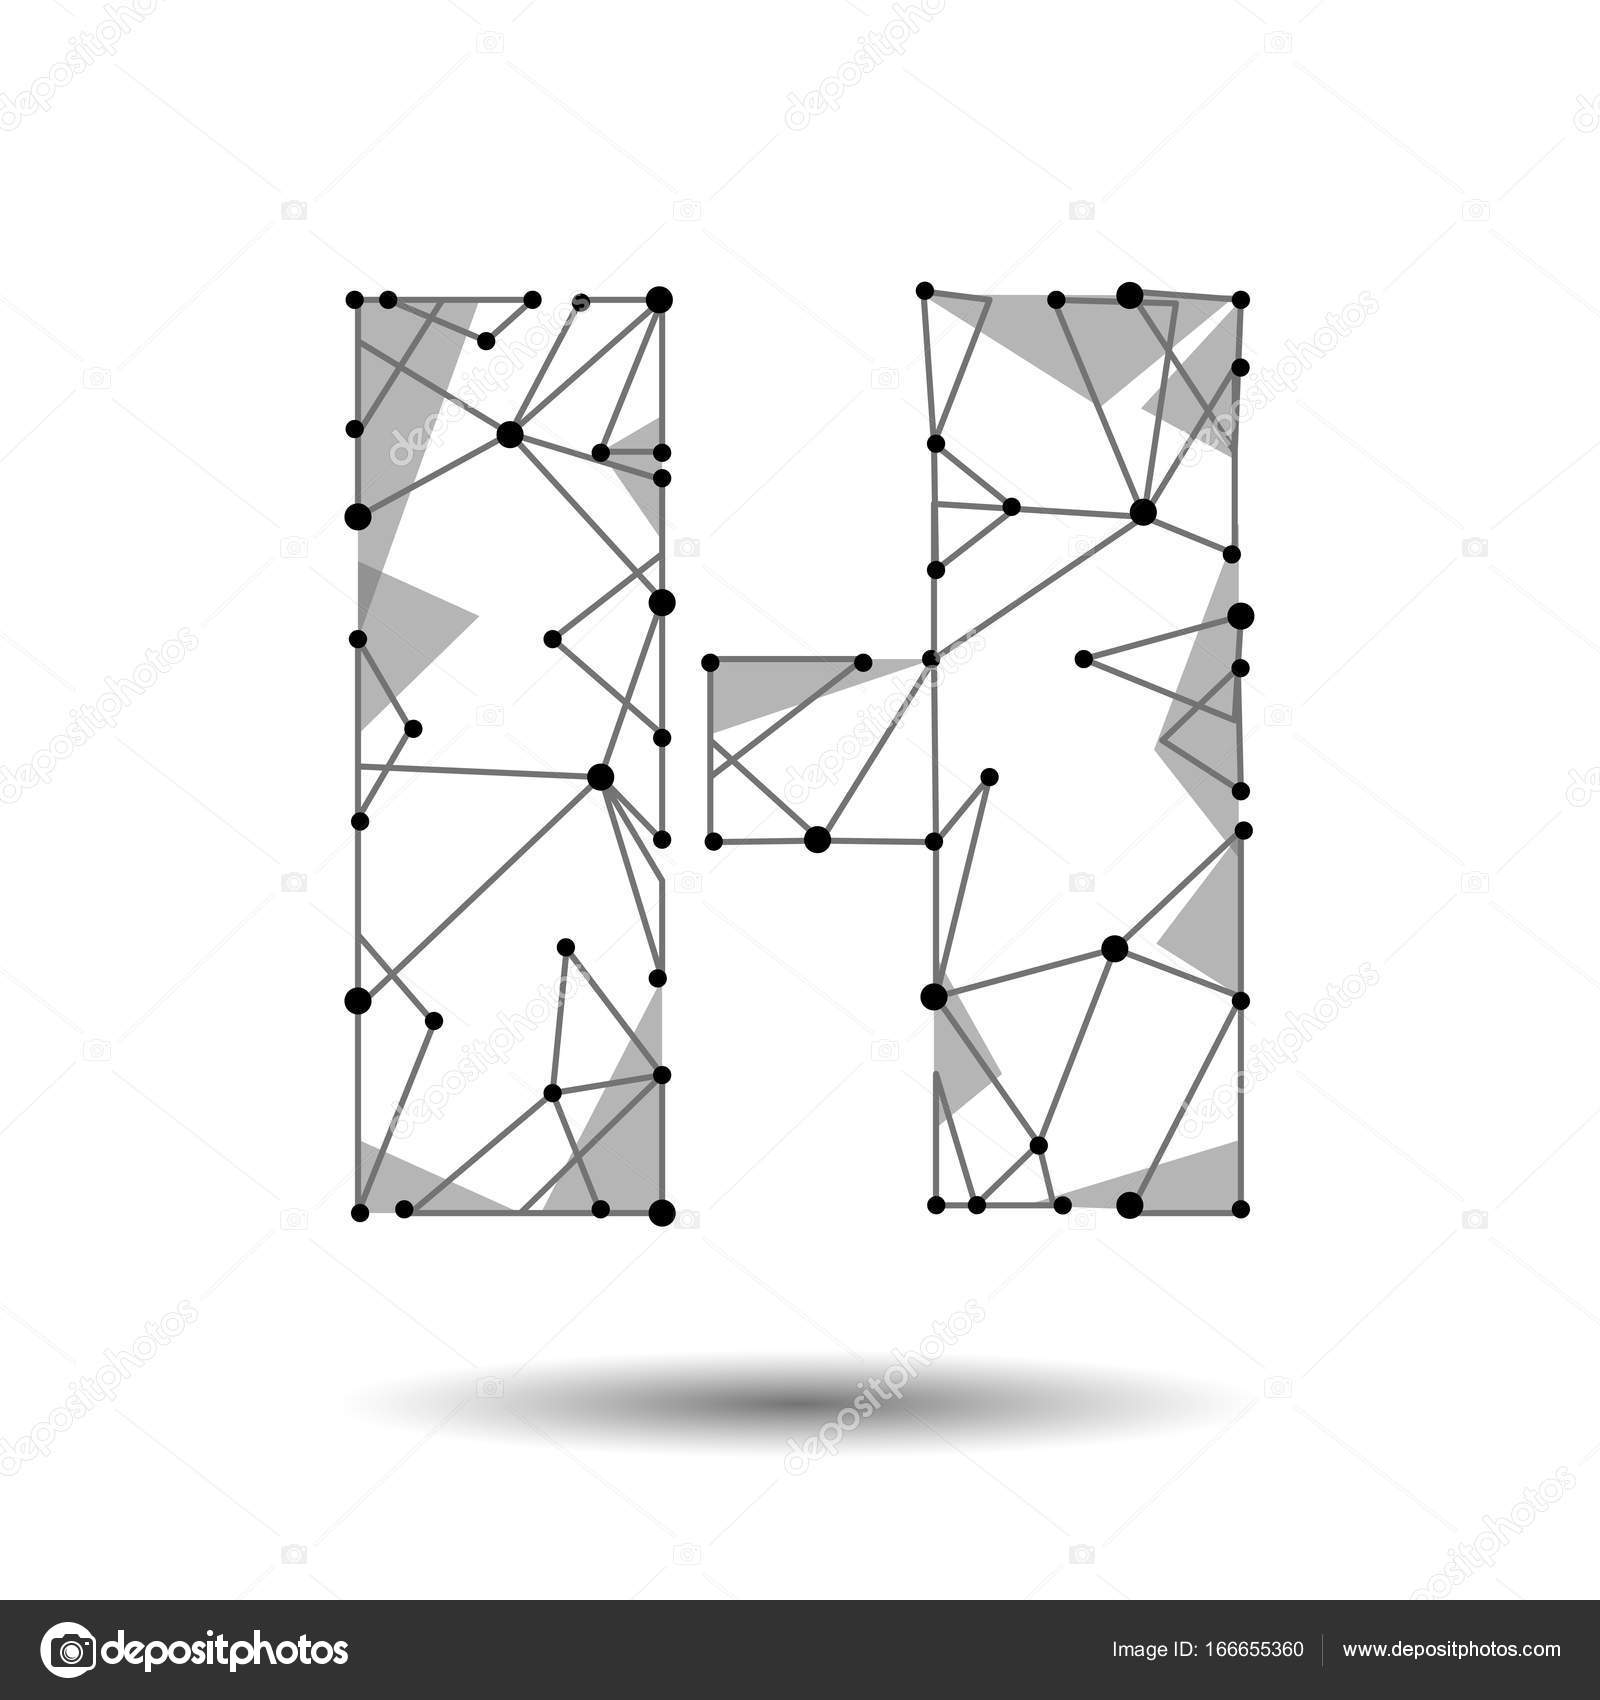 Low poly letter h english latin cyrillic polygonal triangle connect low poly letter h english latin cyrillic polygonal triangle connect dot point line black white 3d structure model font type vector logo illustration art altavistaventures Image collections